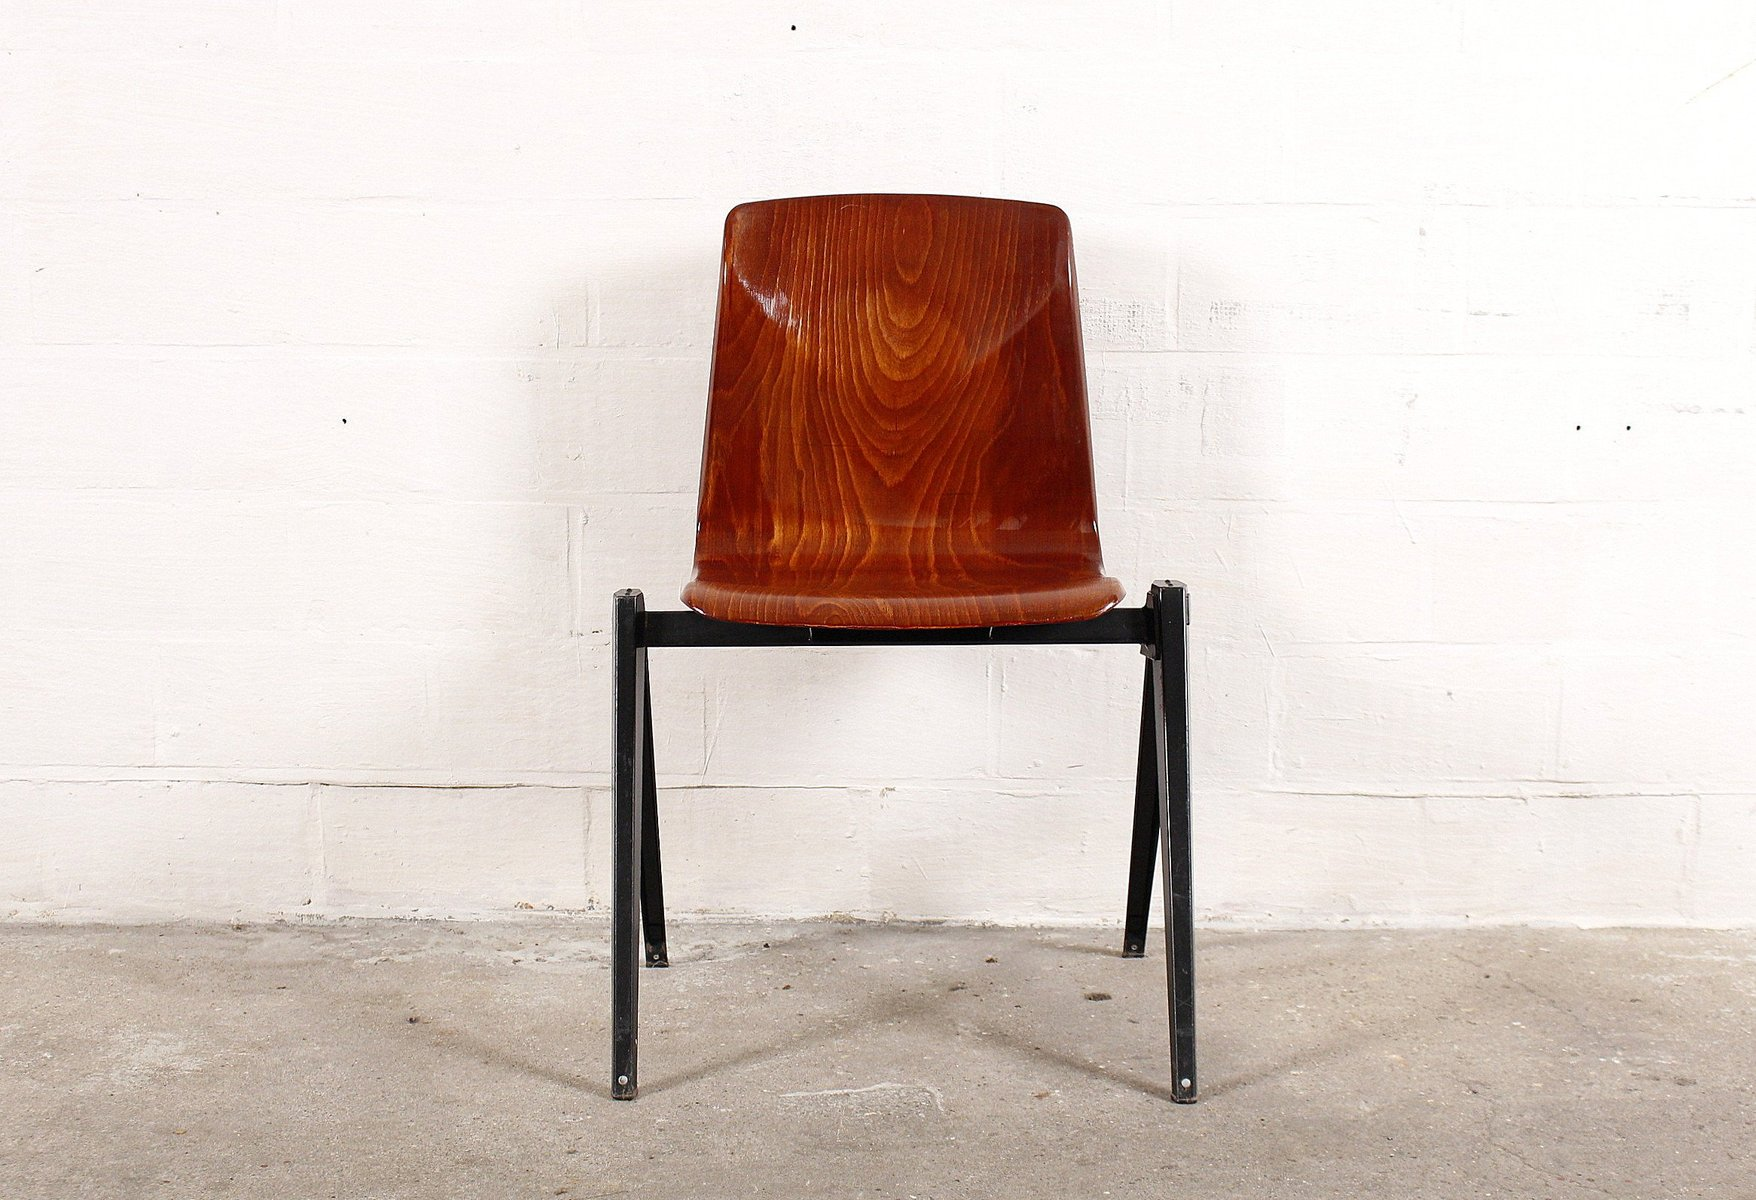 MidCentury Plywood Metal Chair from Pagholz for sale at Pamono